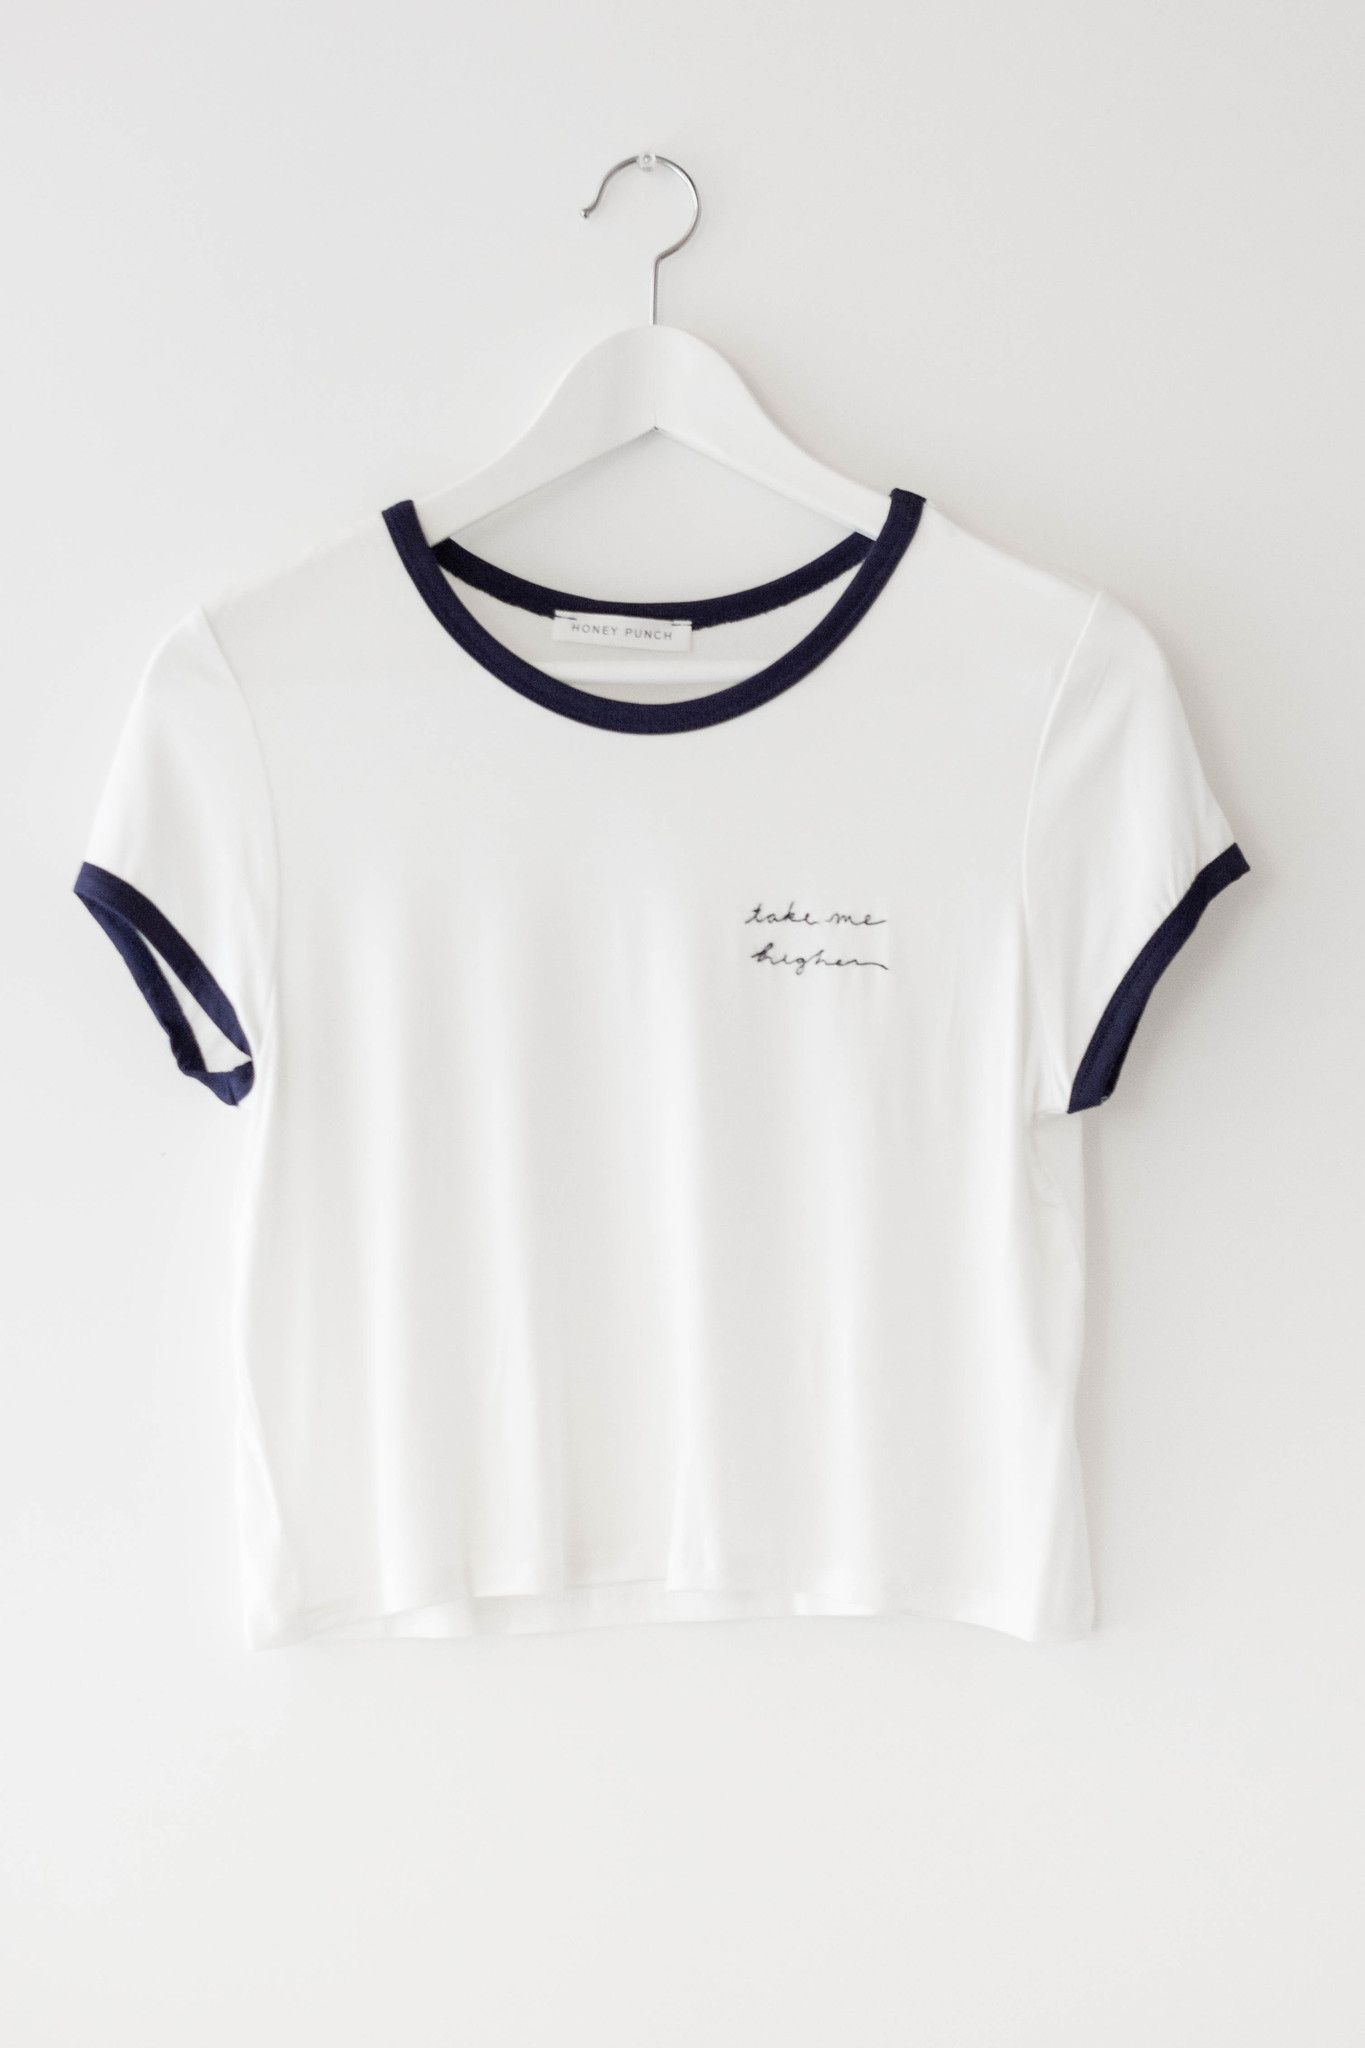 White t shirt crop top - Basic White Crop Top With Embroidered Text Detailing And Contrast Navy Blue Color Made With